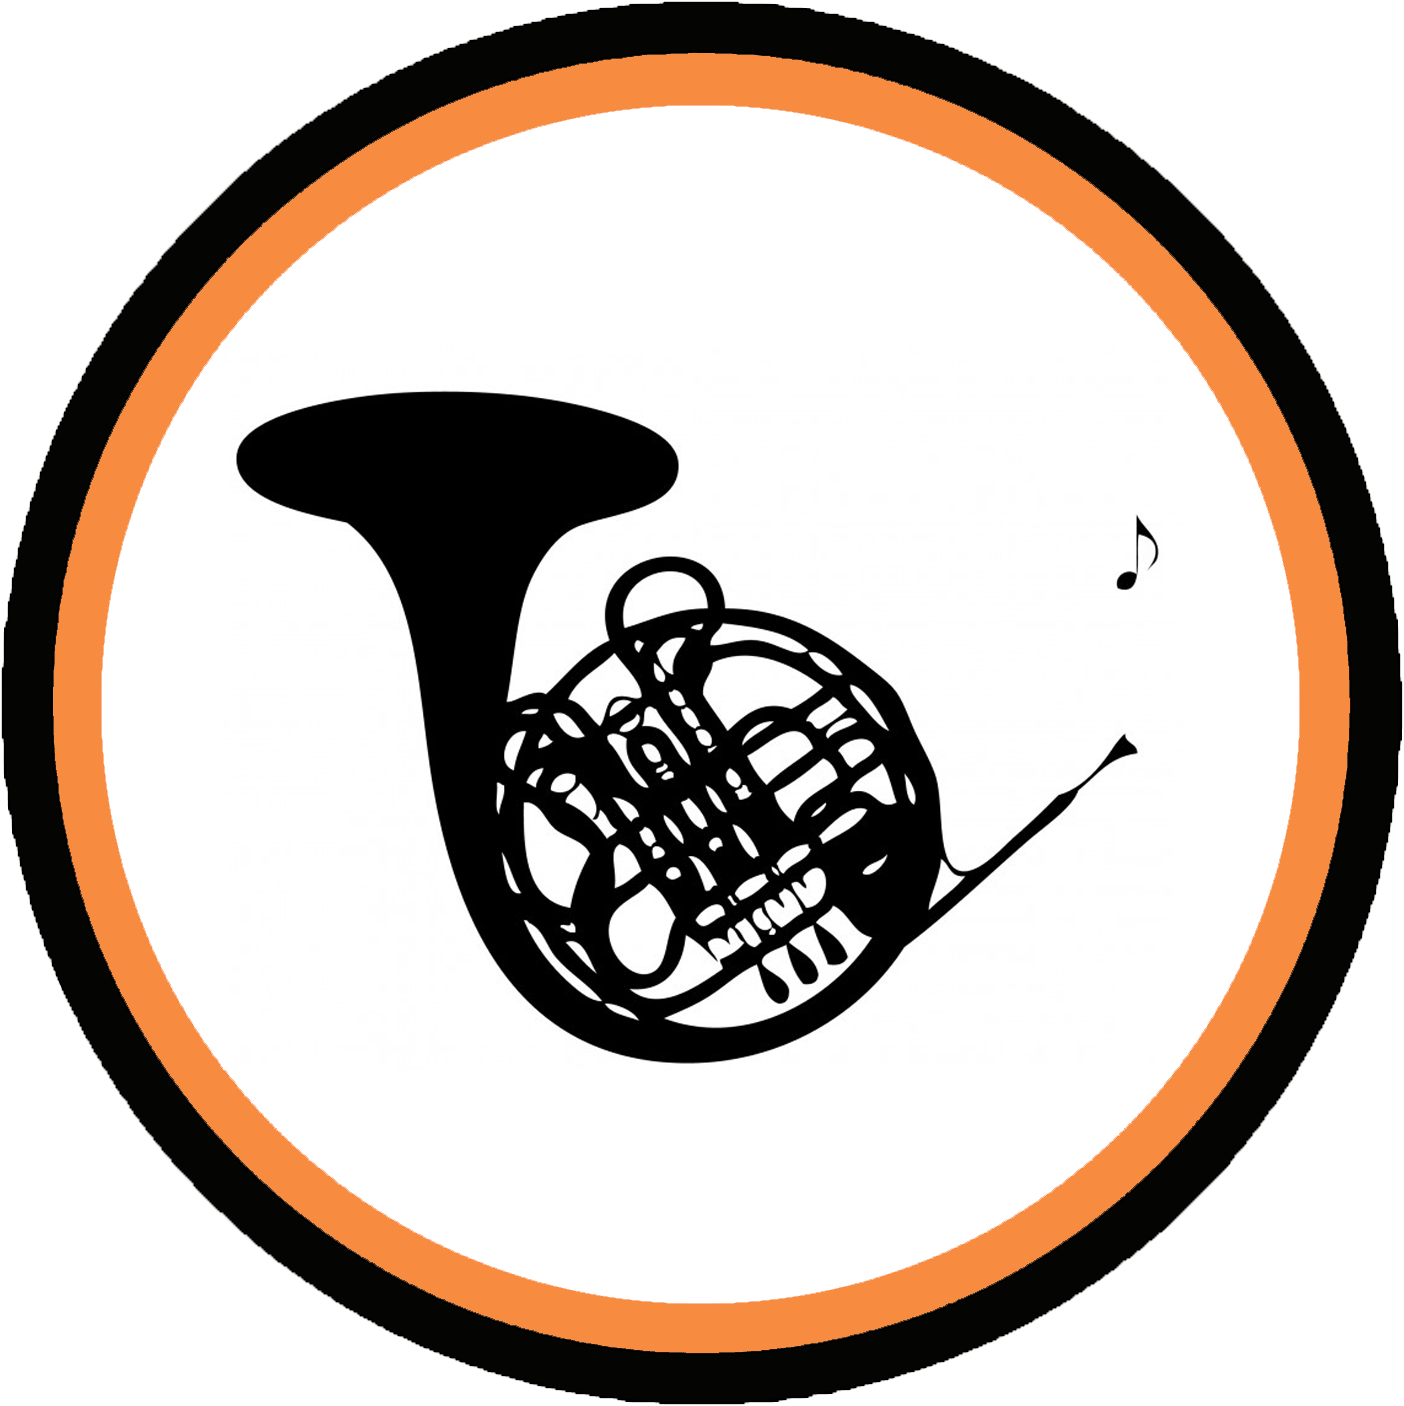 Instruments clipart tuba. Repairs prince music company